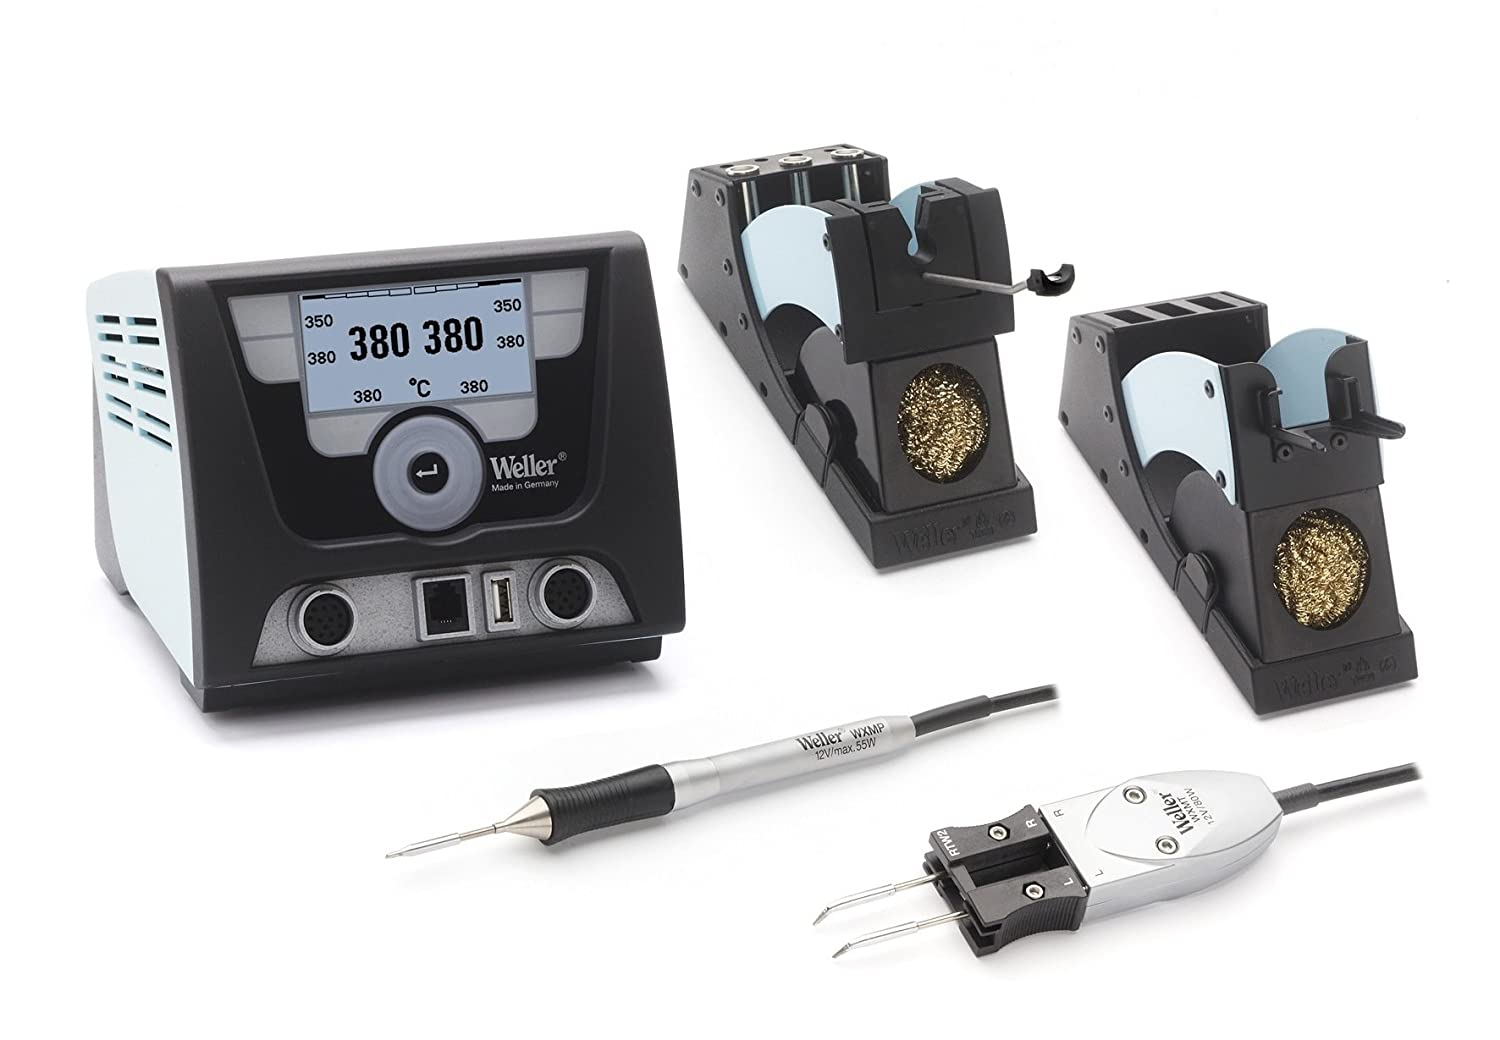 Weller Wx2021 Wxmp Wxmt Wdh50 And 60 120v Solder De Wlc 100 Temperature Controlled Soldering Station Irons